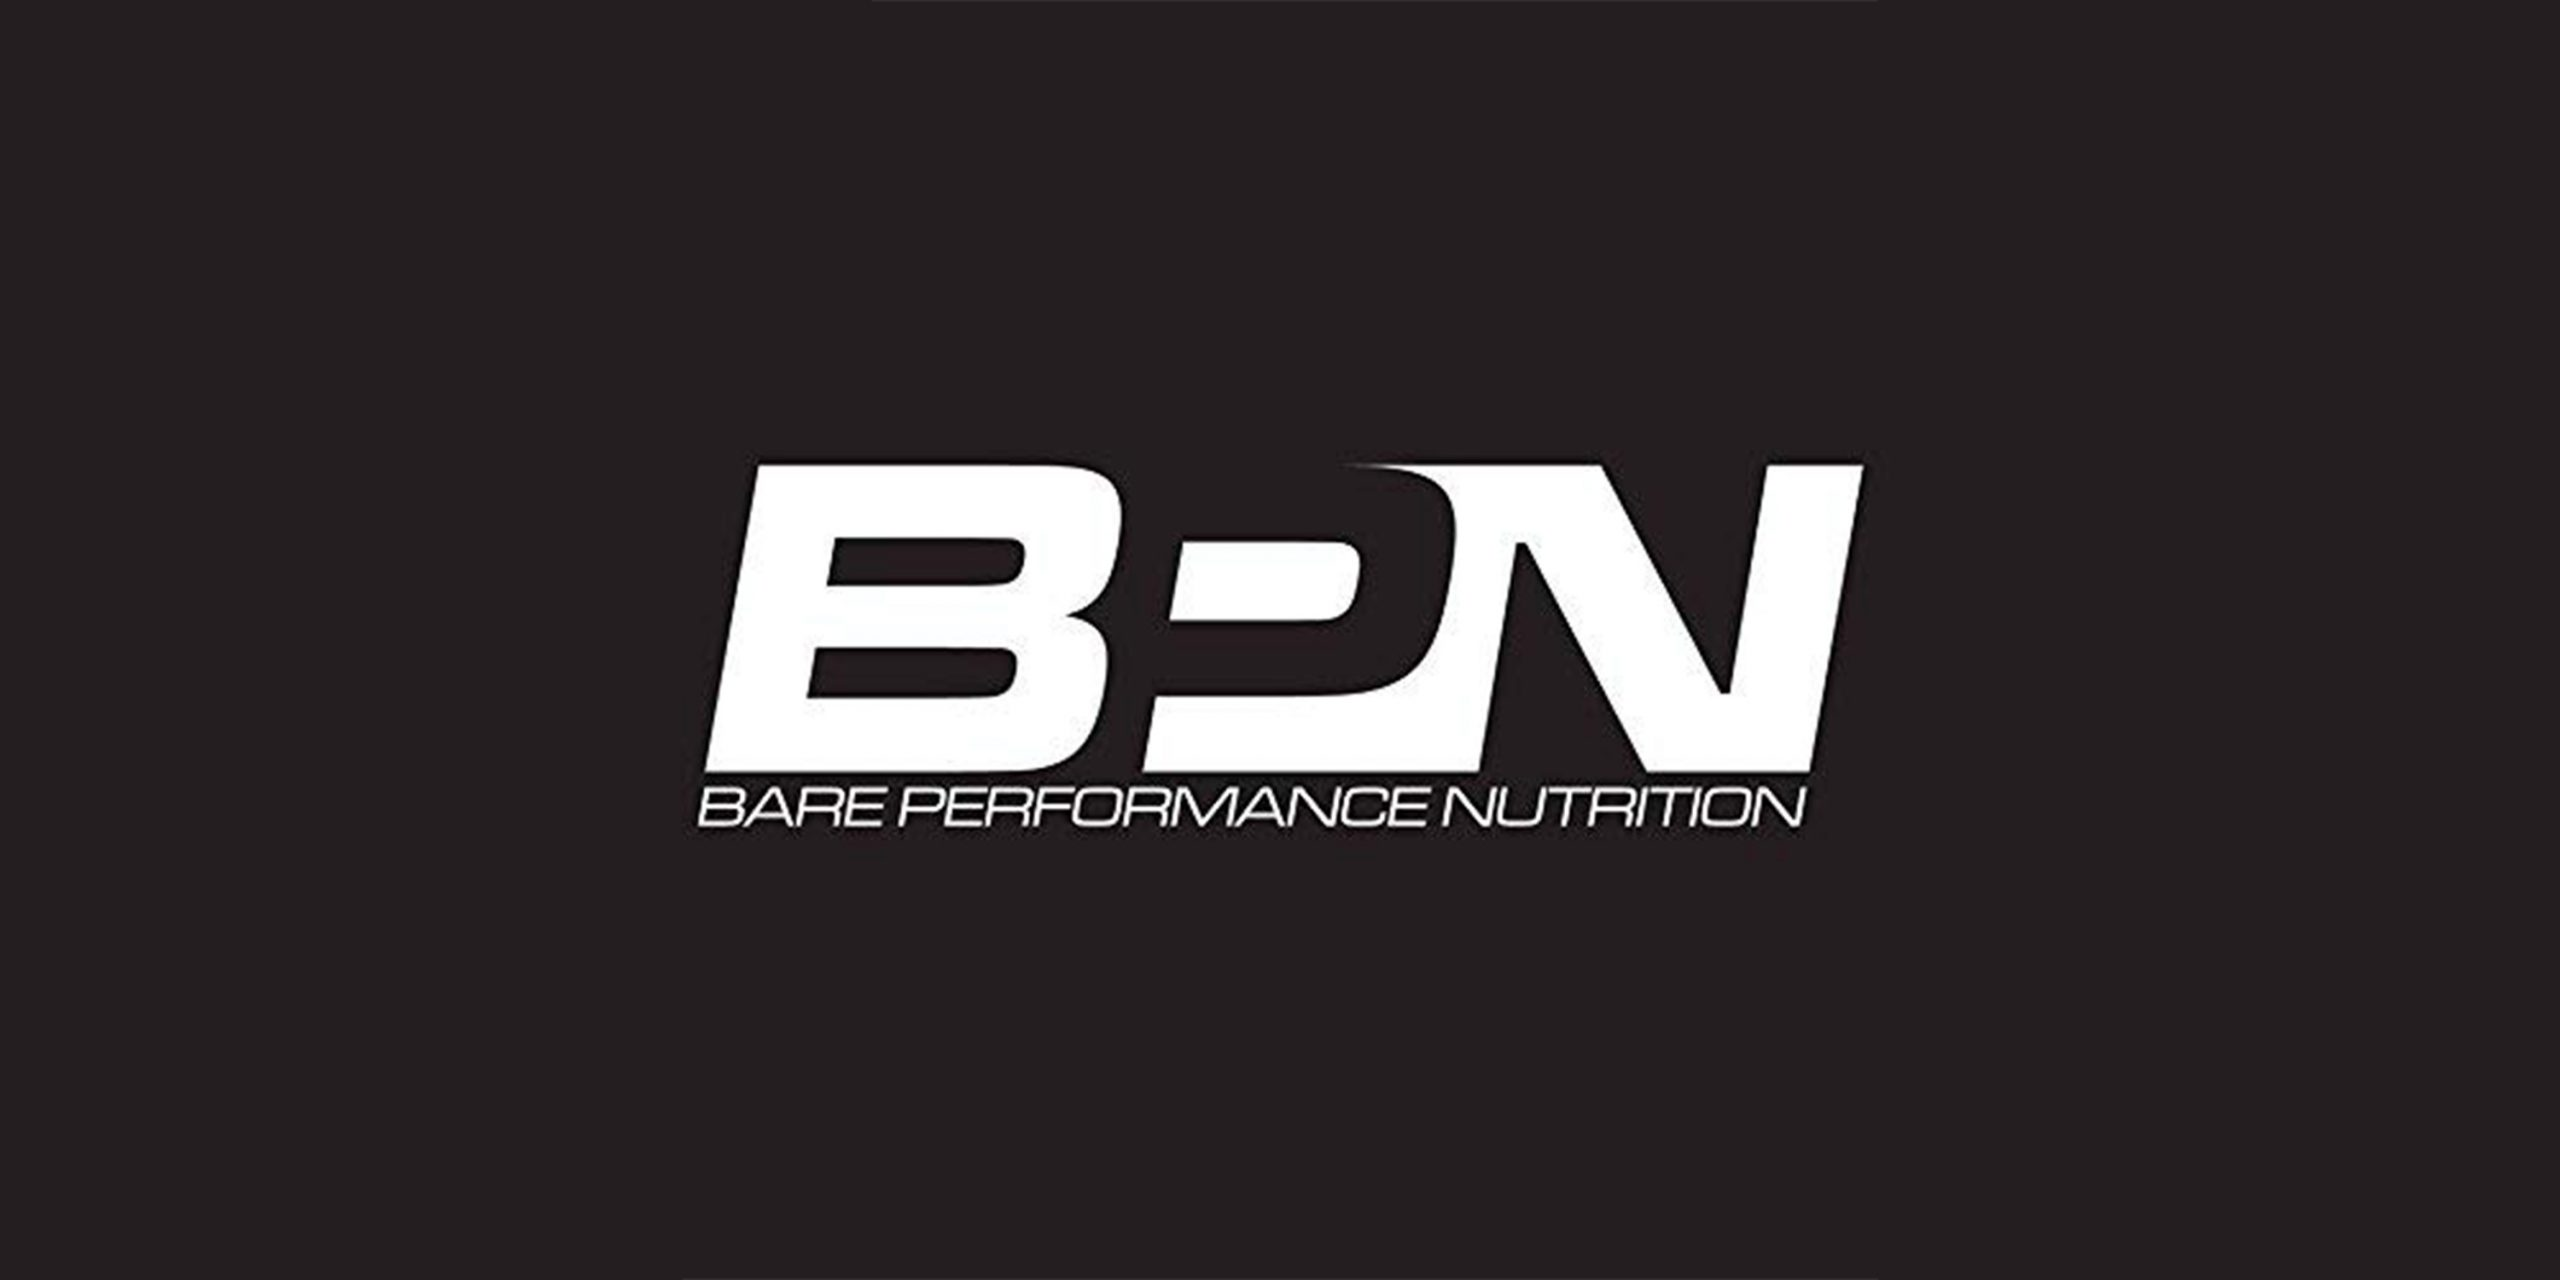 bare performance nutrition 1 scaled